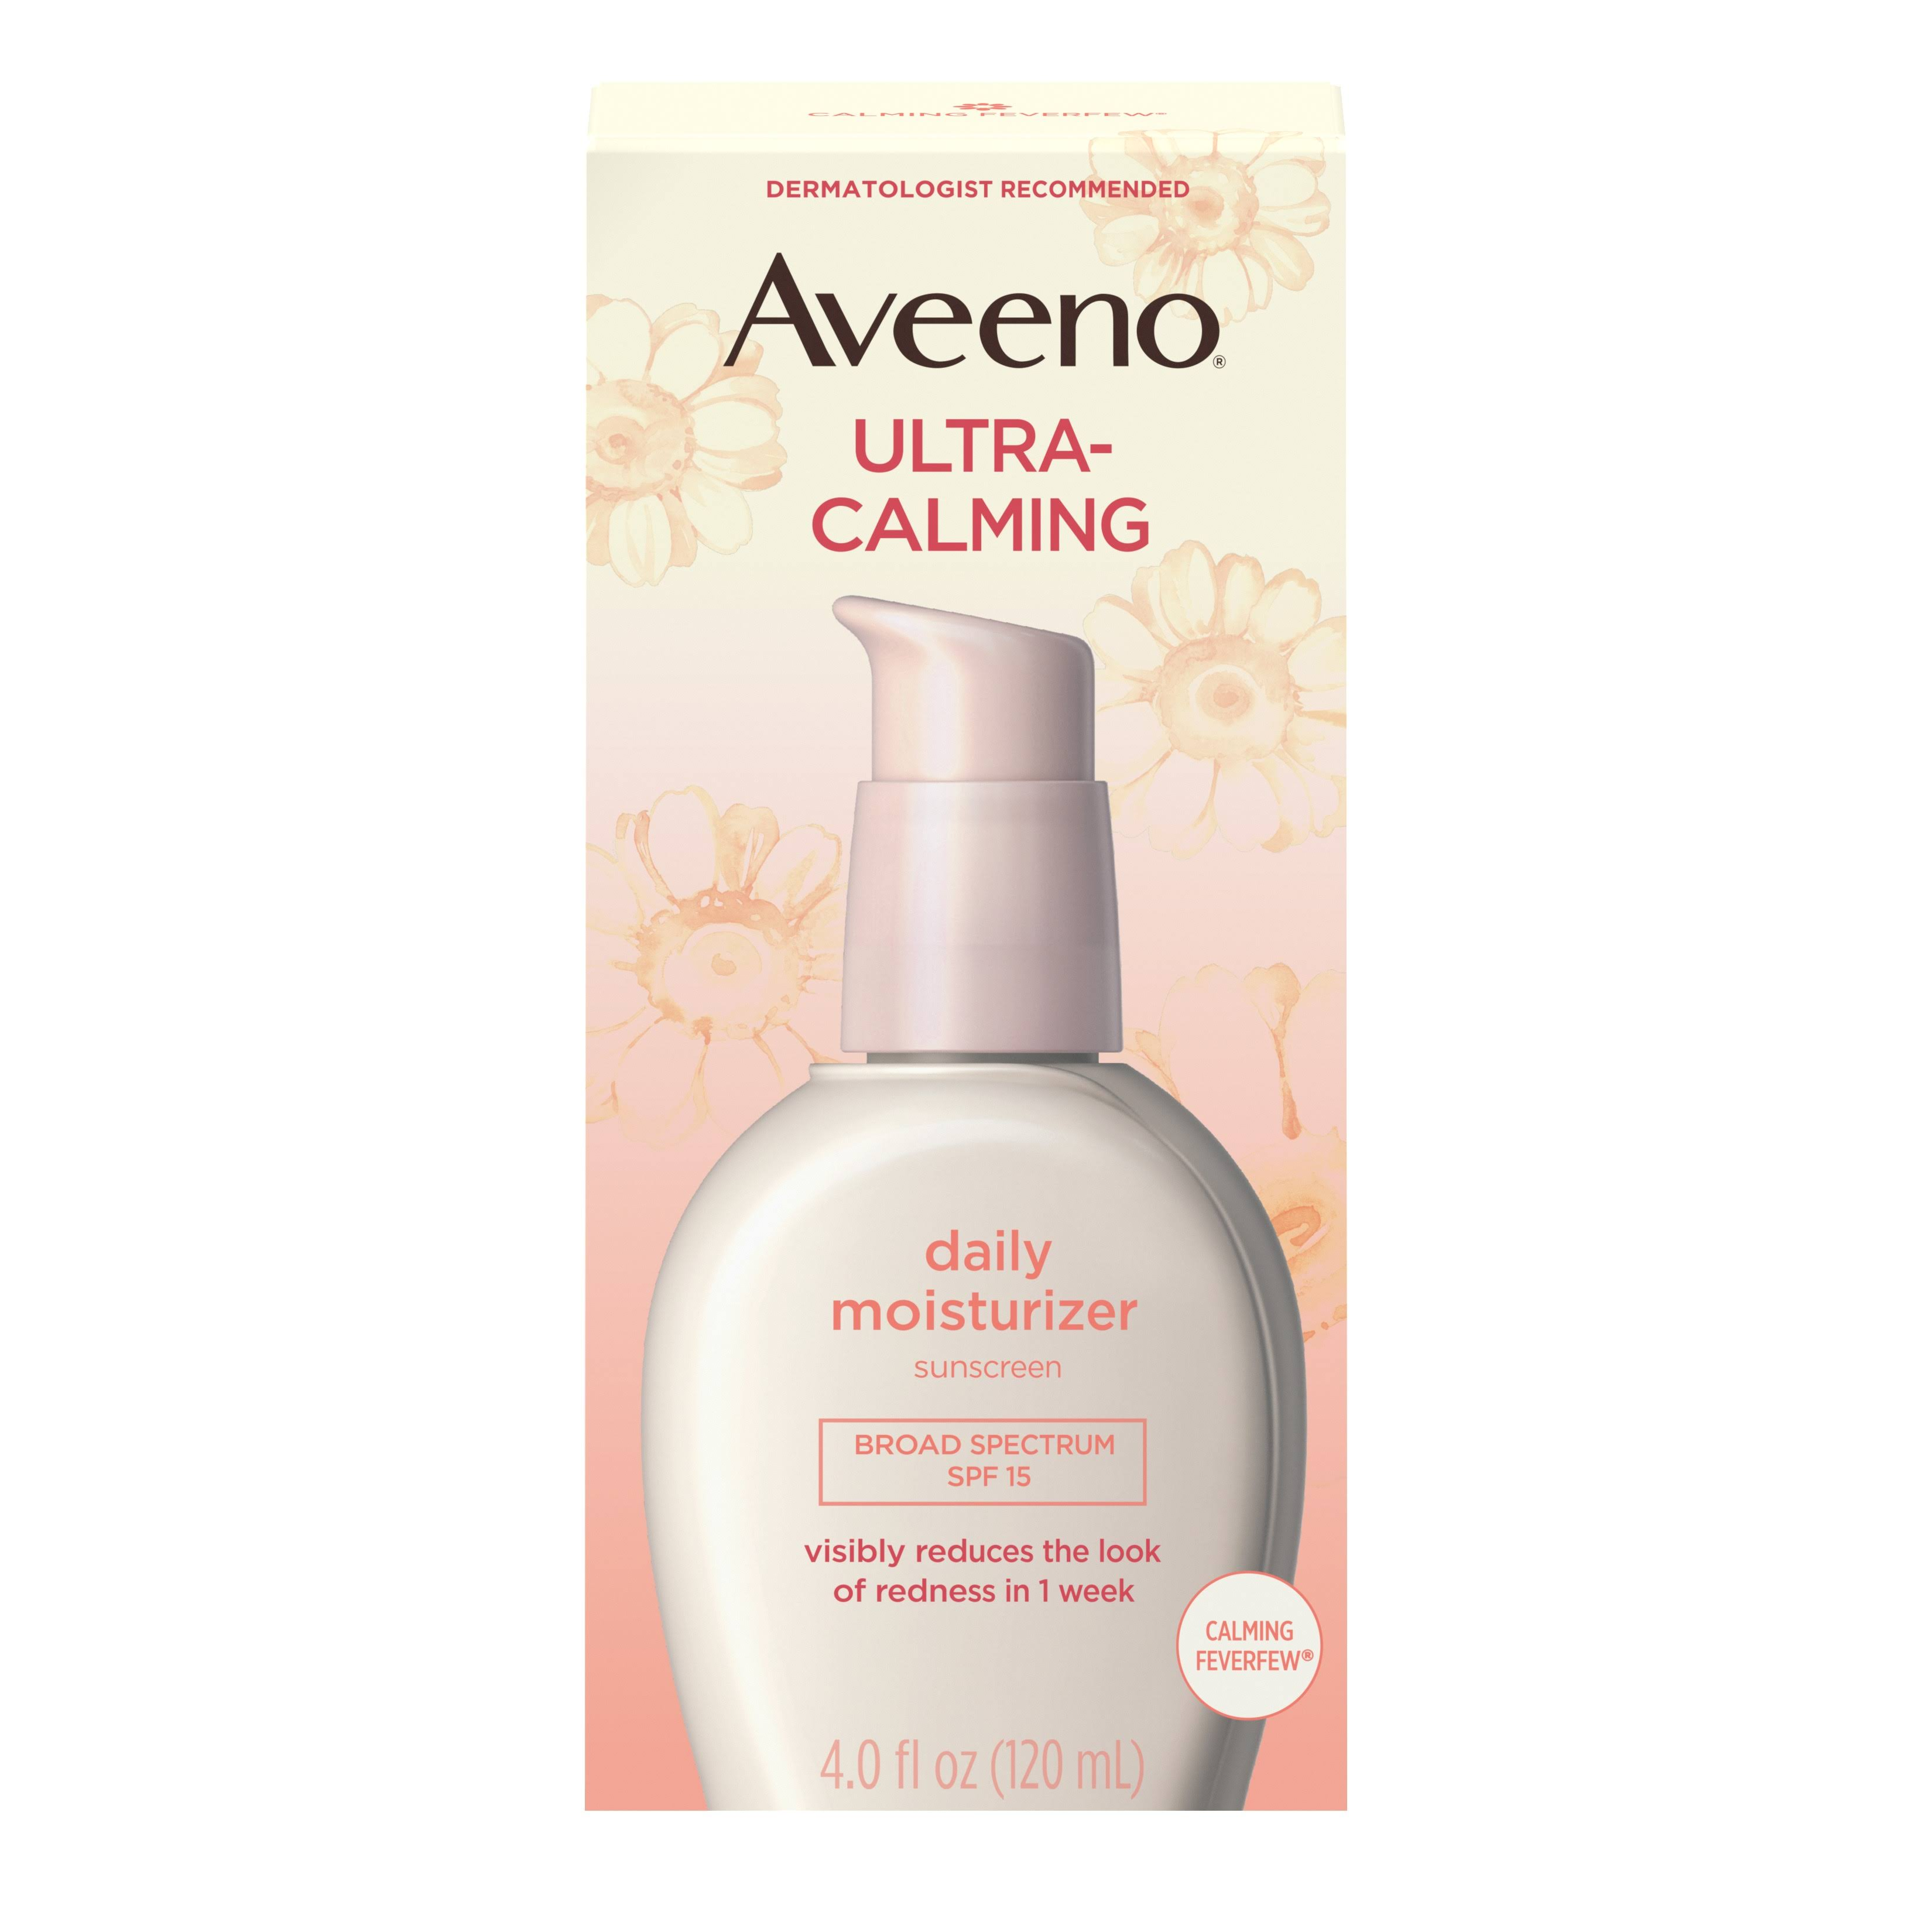 Aveeno Active Naturals Daily Moisturizer with Sunscreen Broad Spectrum SPF 15 - 4oz